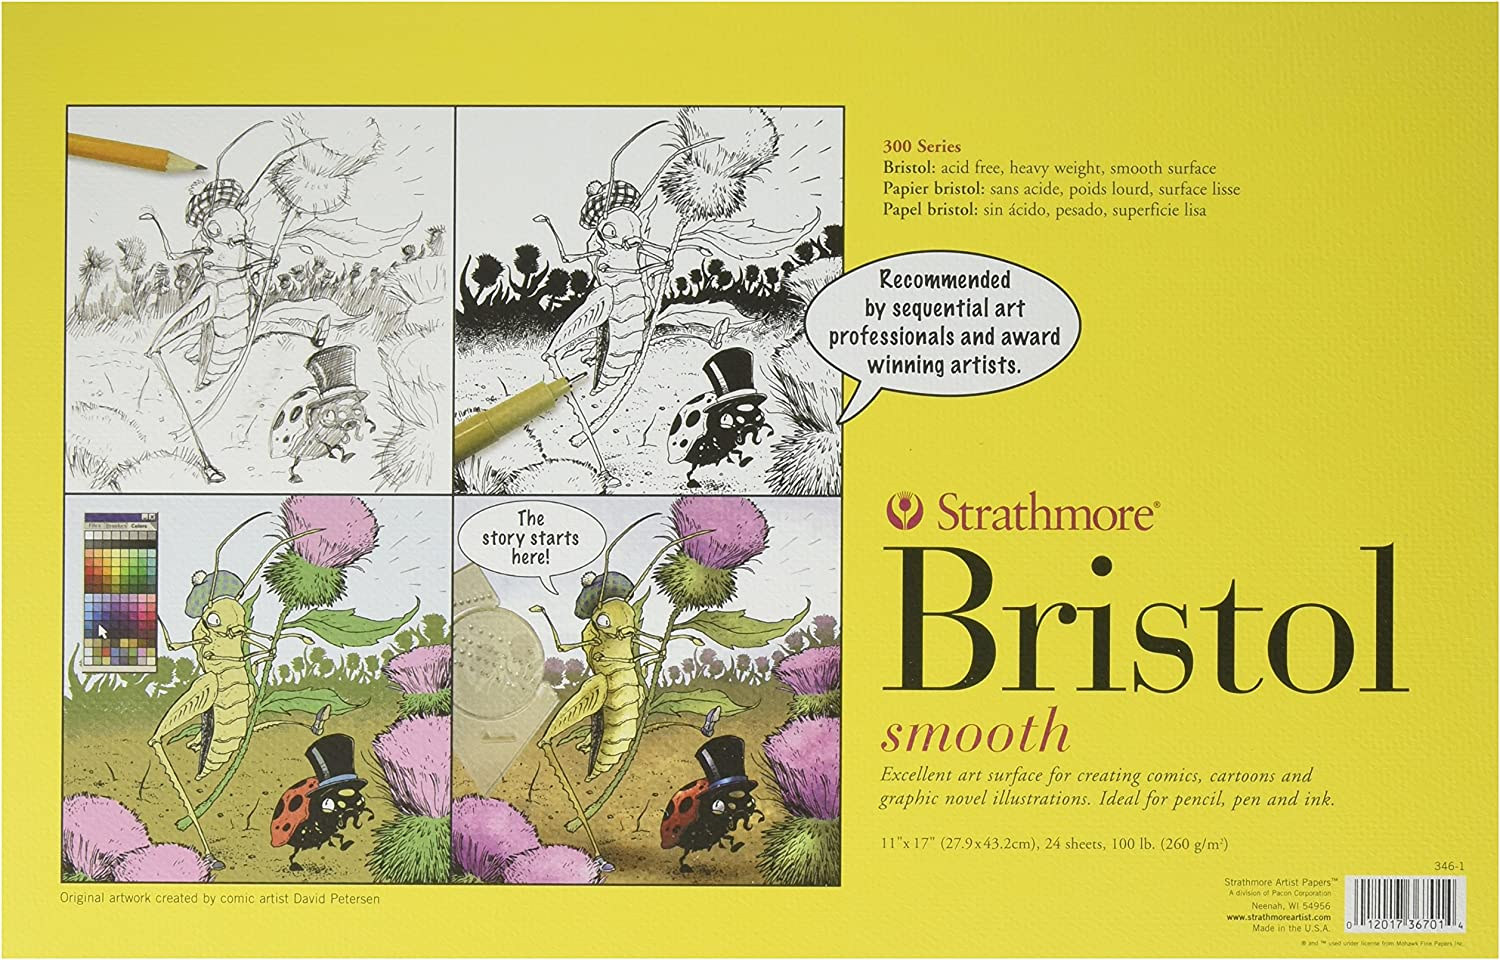 Strathmore 300 Series Bristol Smooth 11 x 17 pulg. 24 hojas